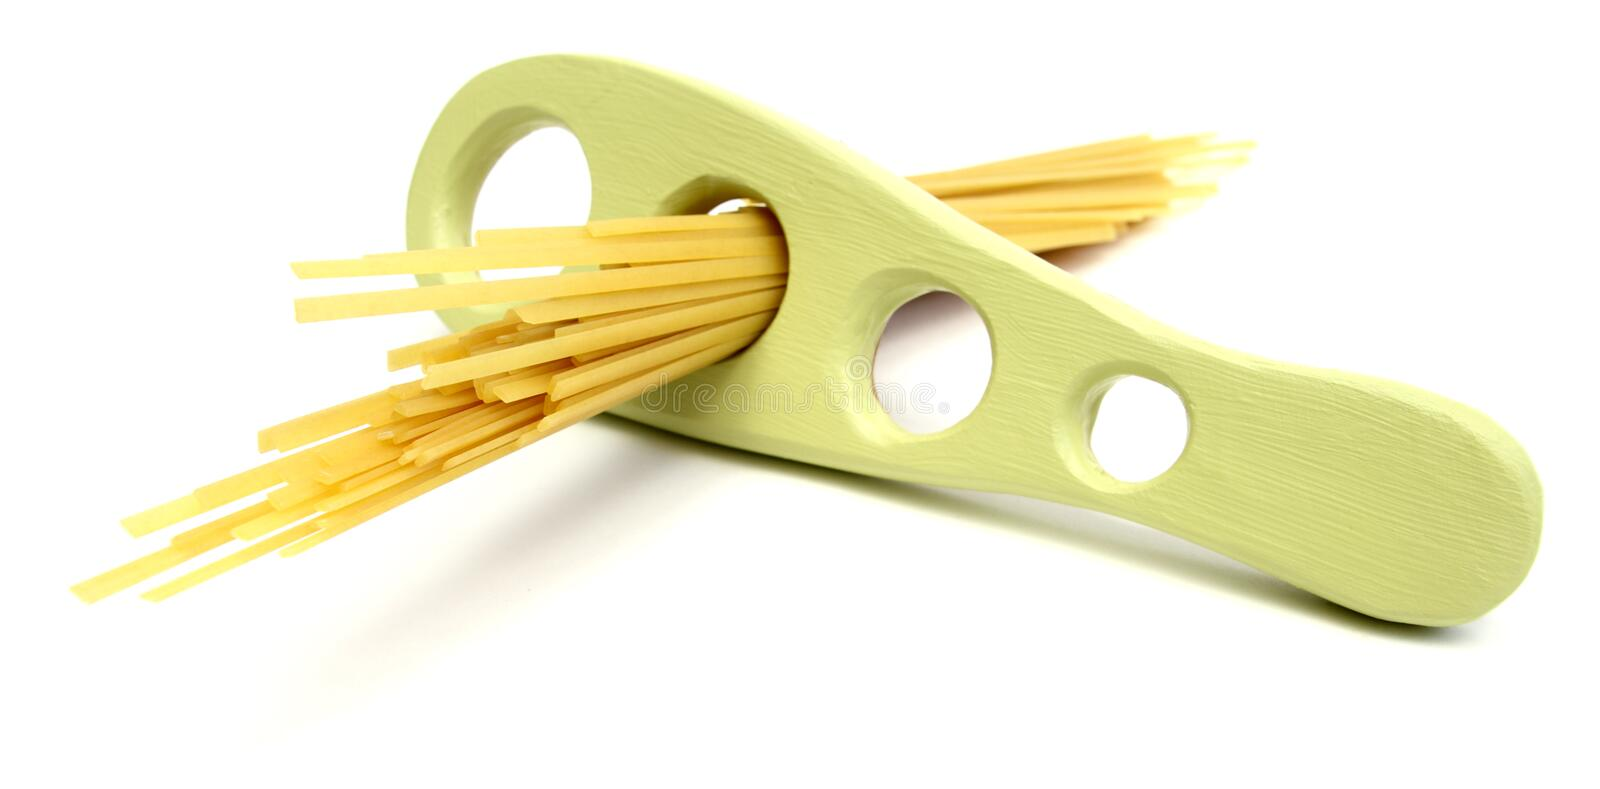 Fettuccini portion royalty free stock images